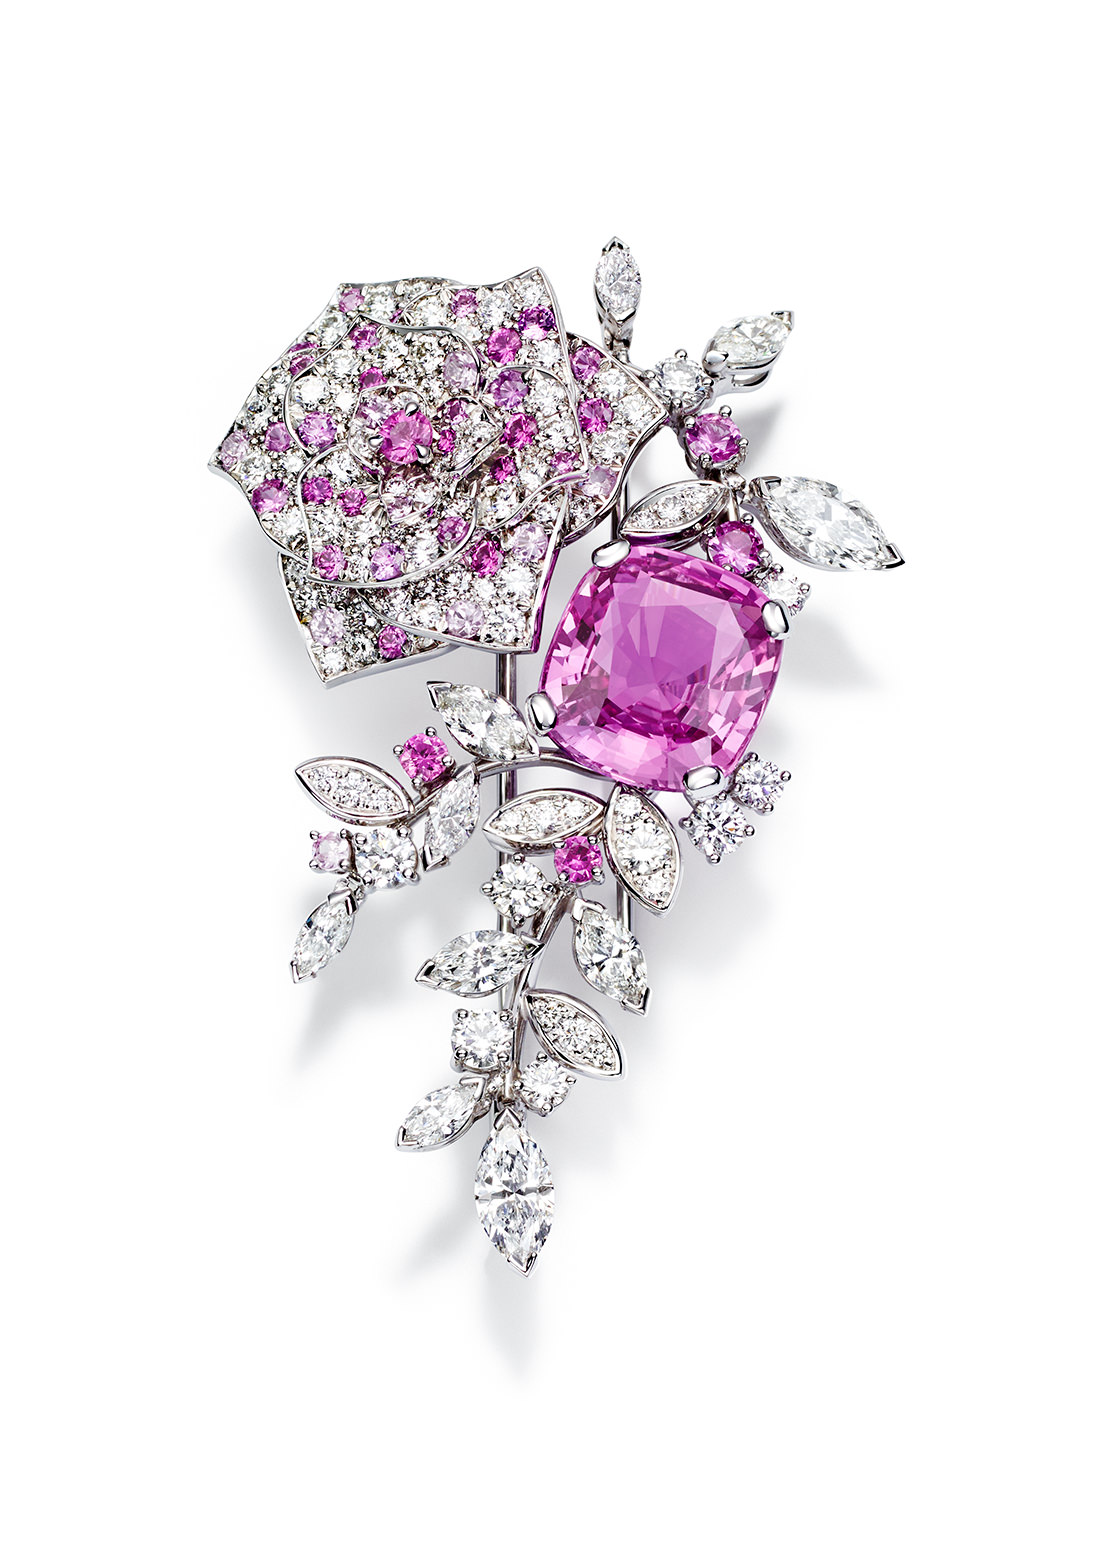 Piaget Offers A Time Of Romance The